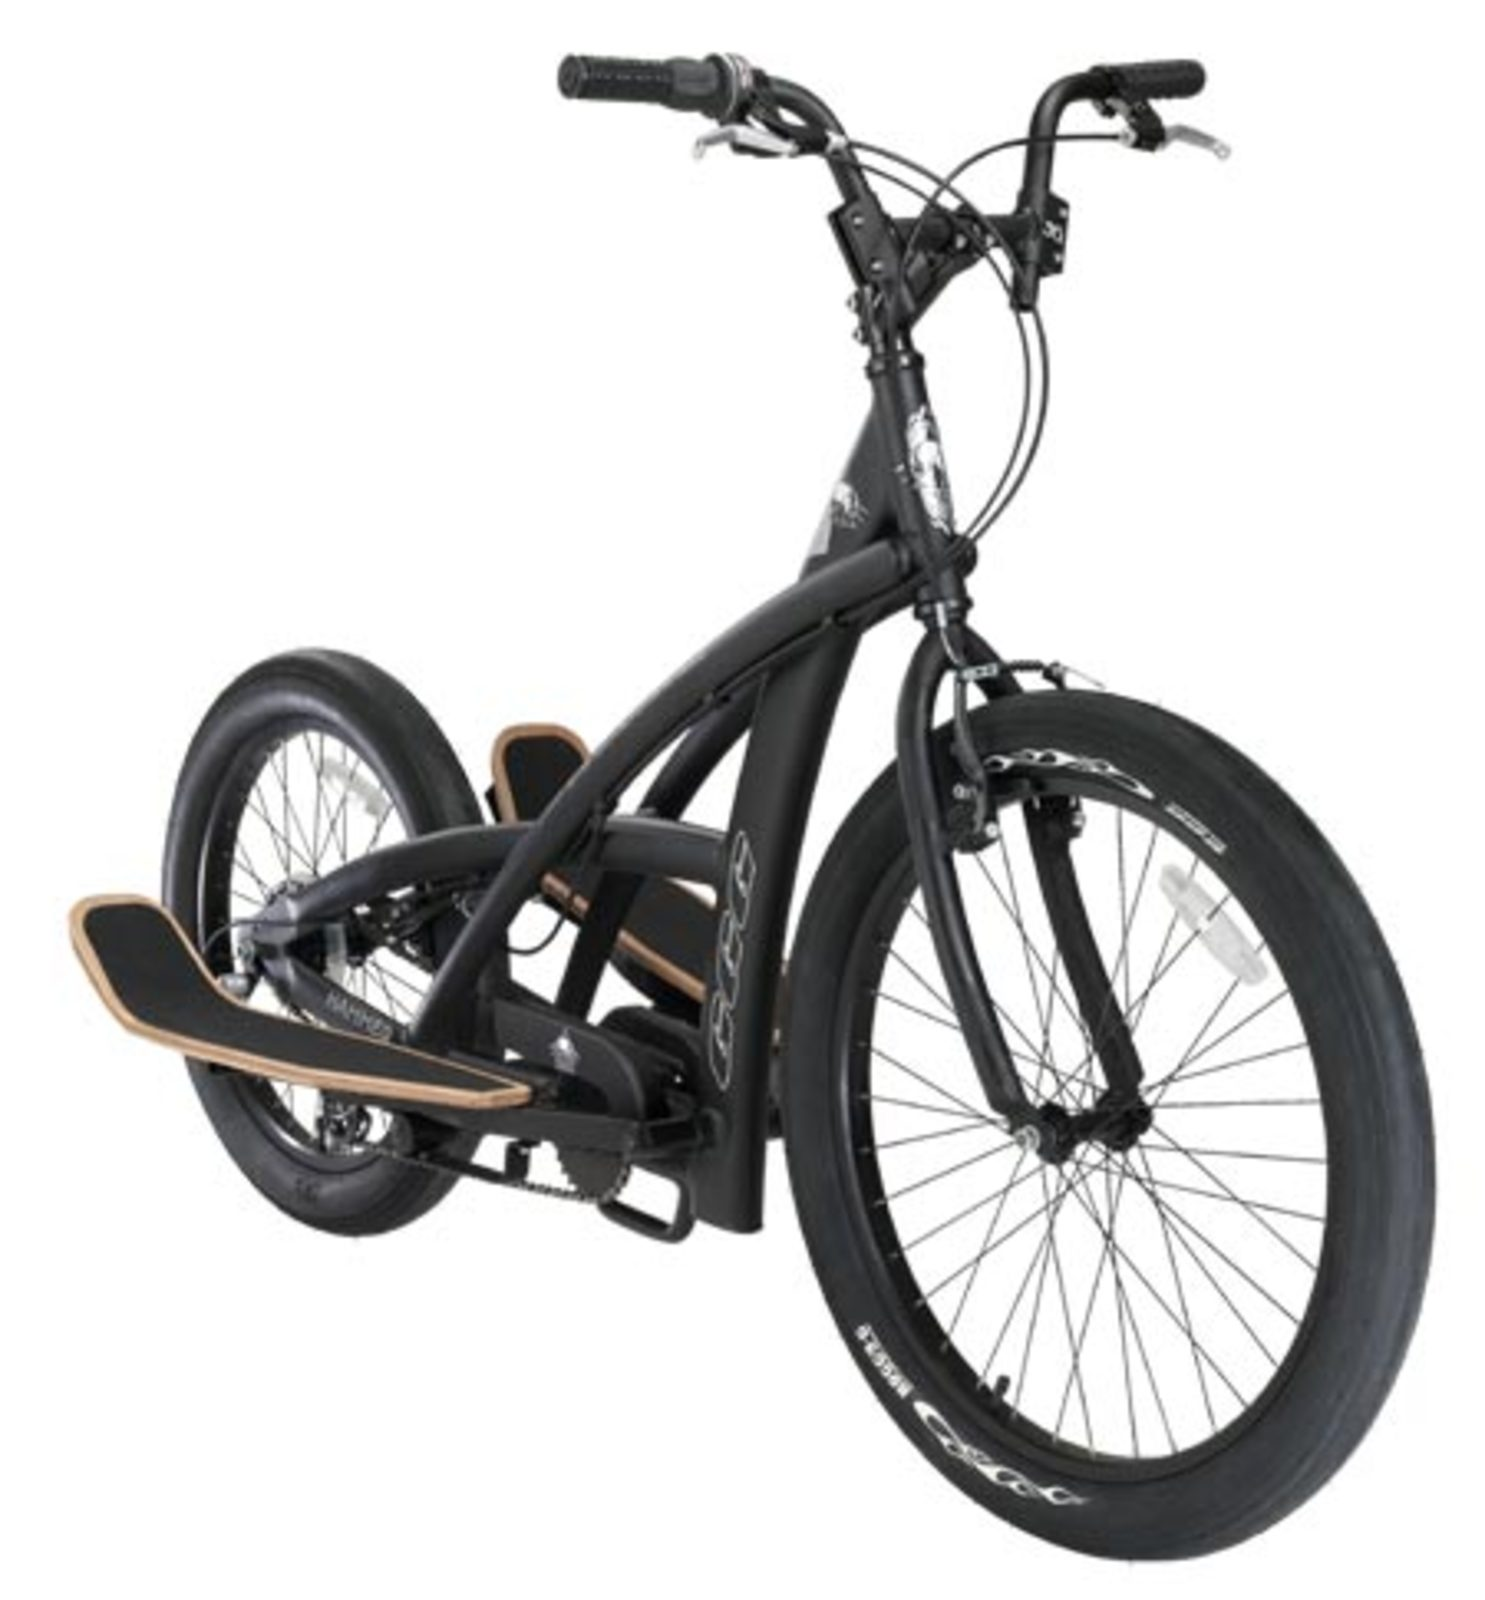 3g Bikes The 3g Stepper Cool Hunting